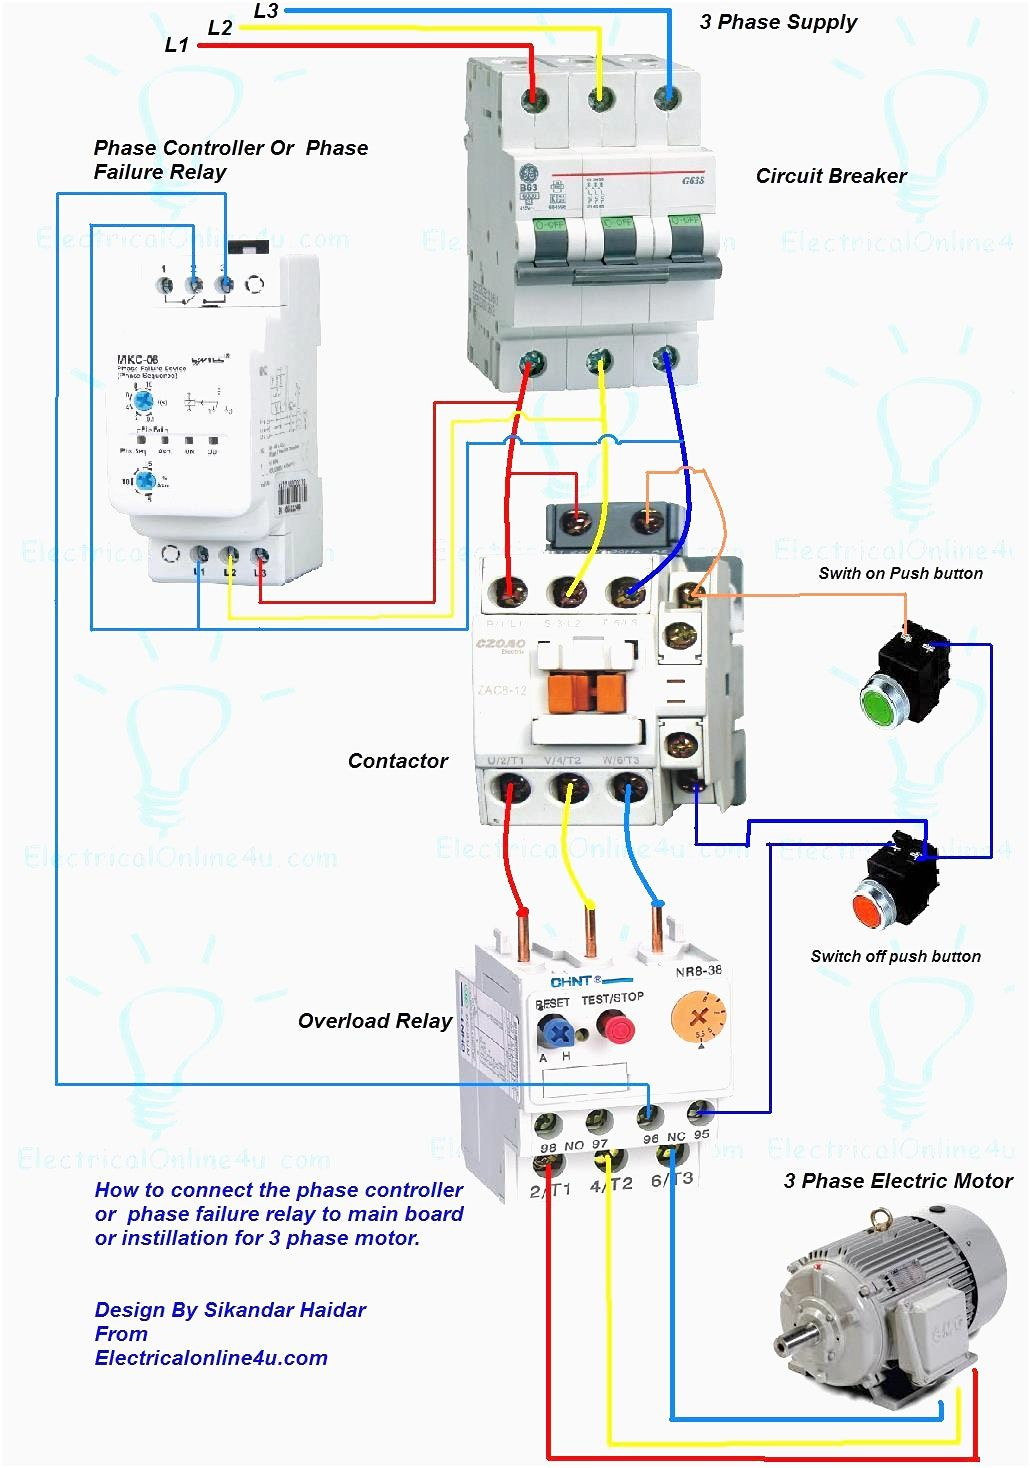 hight resolution of wiring diagram for motor starter 3 phase controller failure relay 6 wire 3 phase motor wiring 3 phase motor starter relay wiring diagram